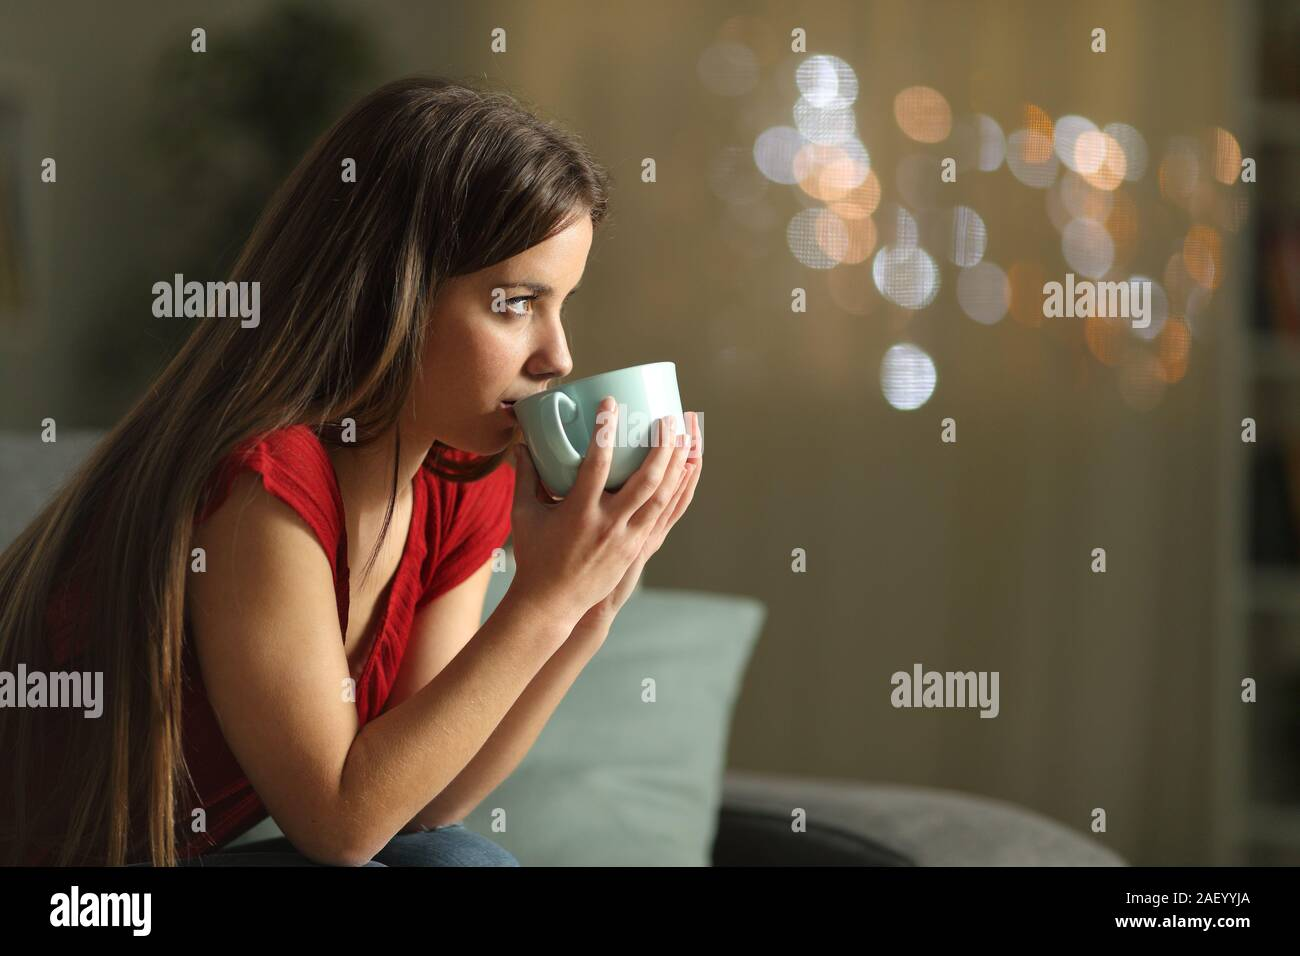 Side view portrait of a woman looking away drinking coffee sitting on a couch in the night at home Stock Photo